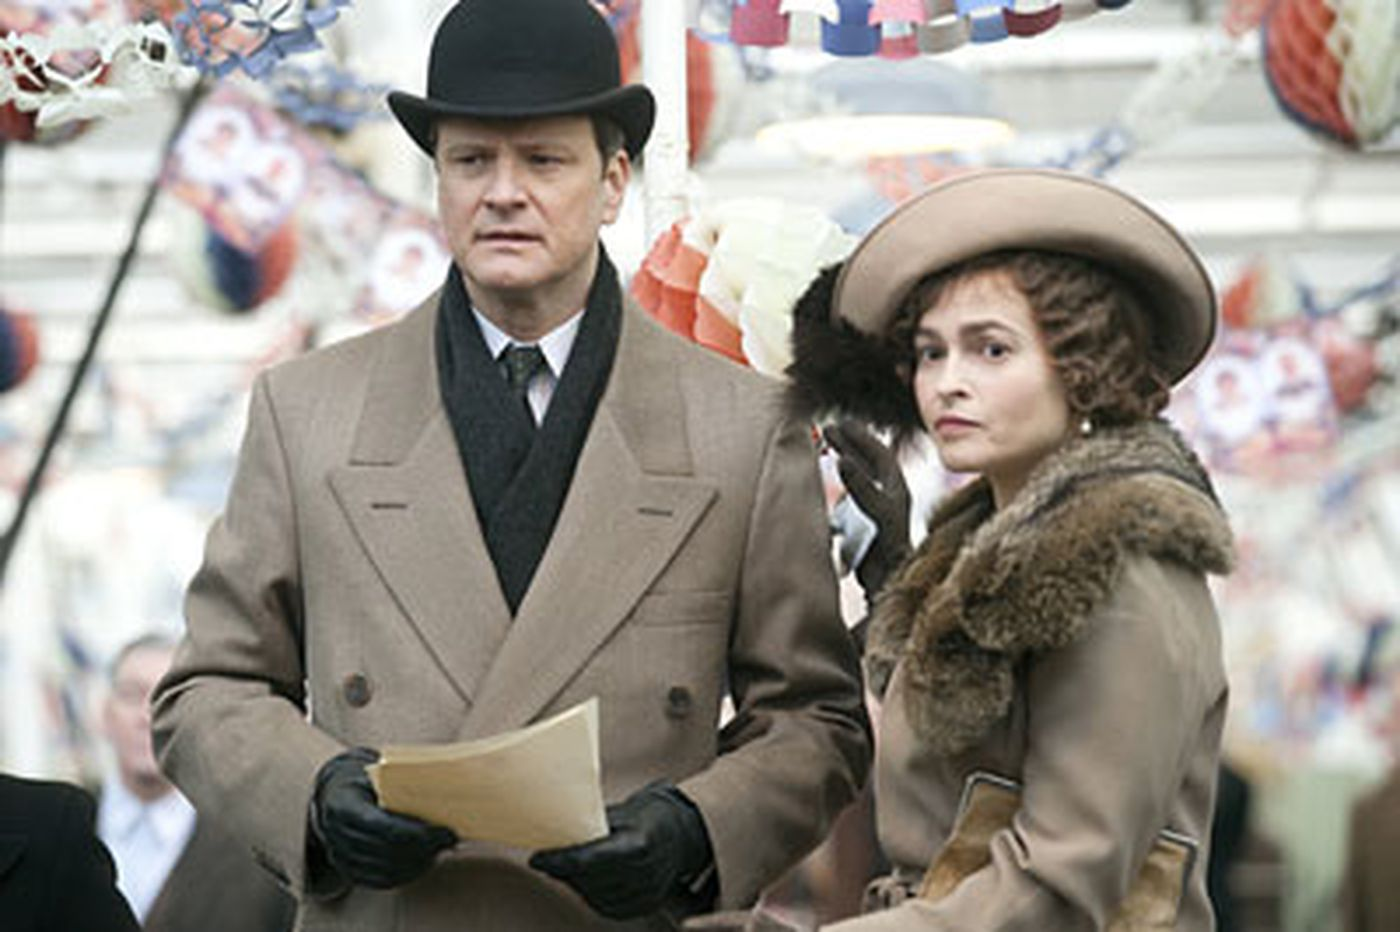 Colin Firth & Geoffrey Rush excel in story of Britain's King George VI overcoming stutter at a critical moment